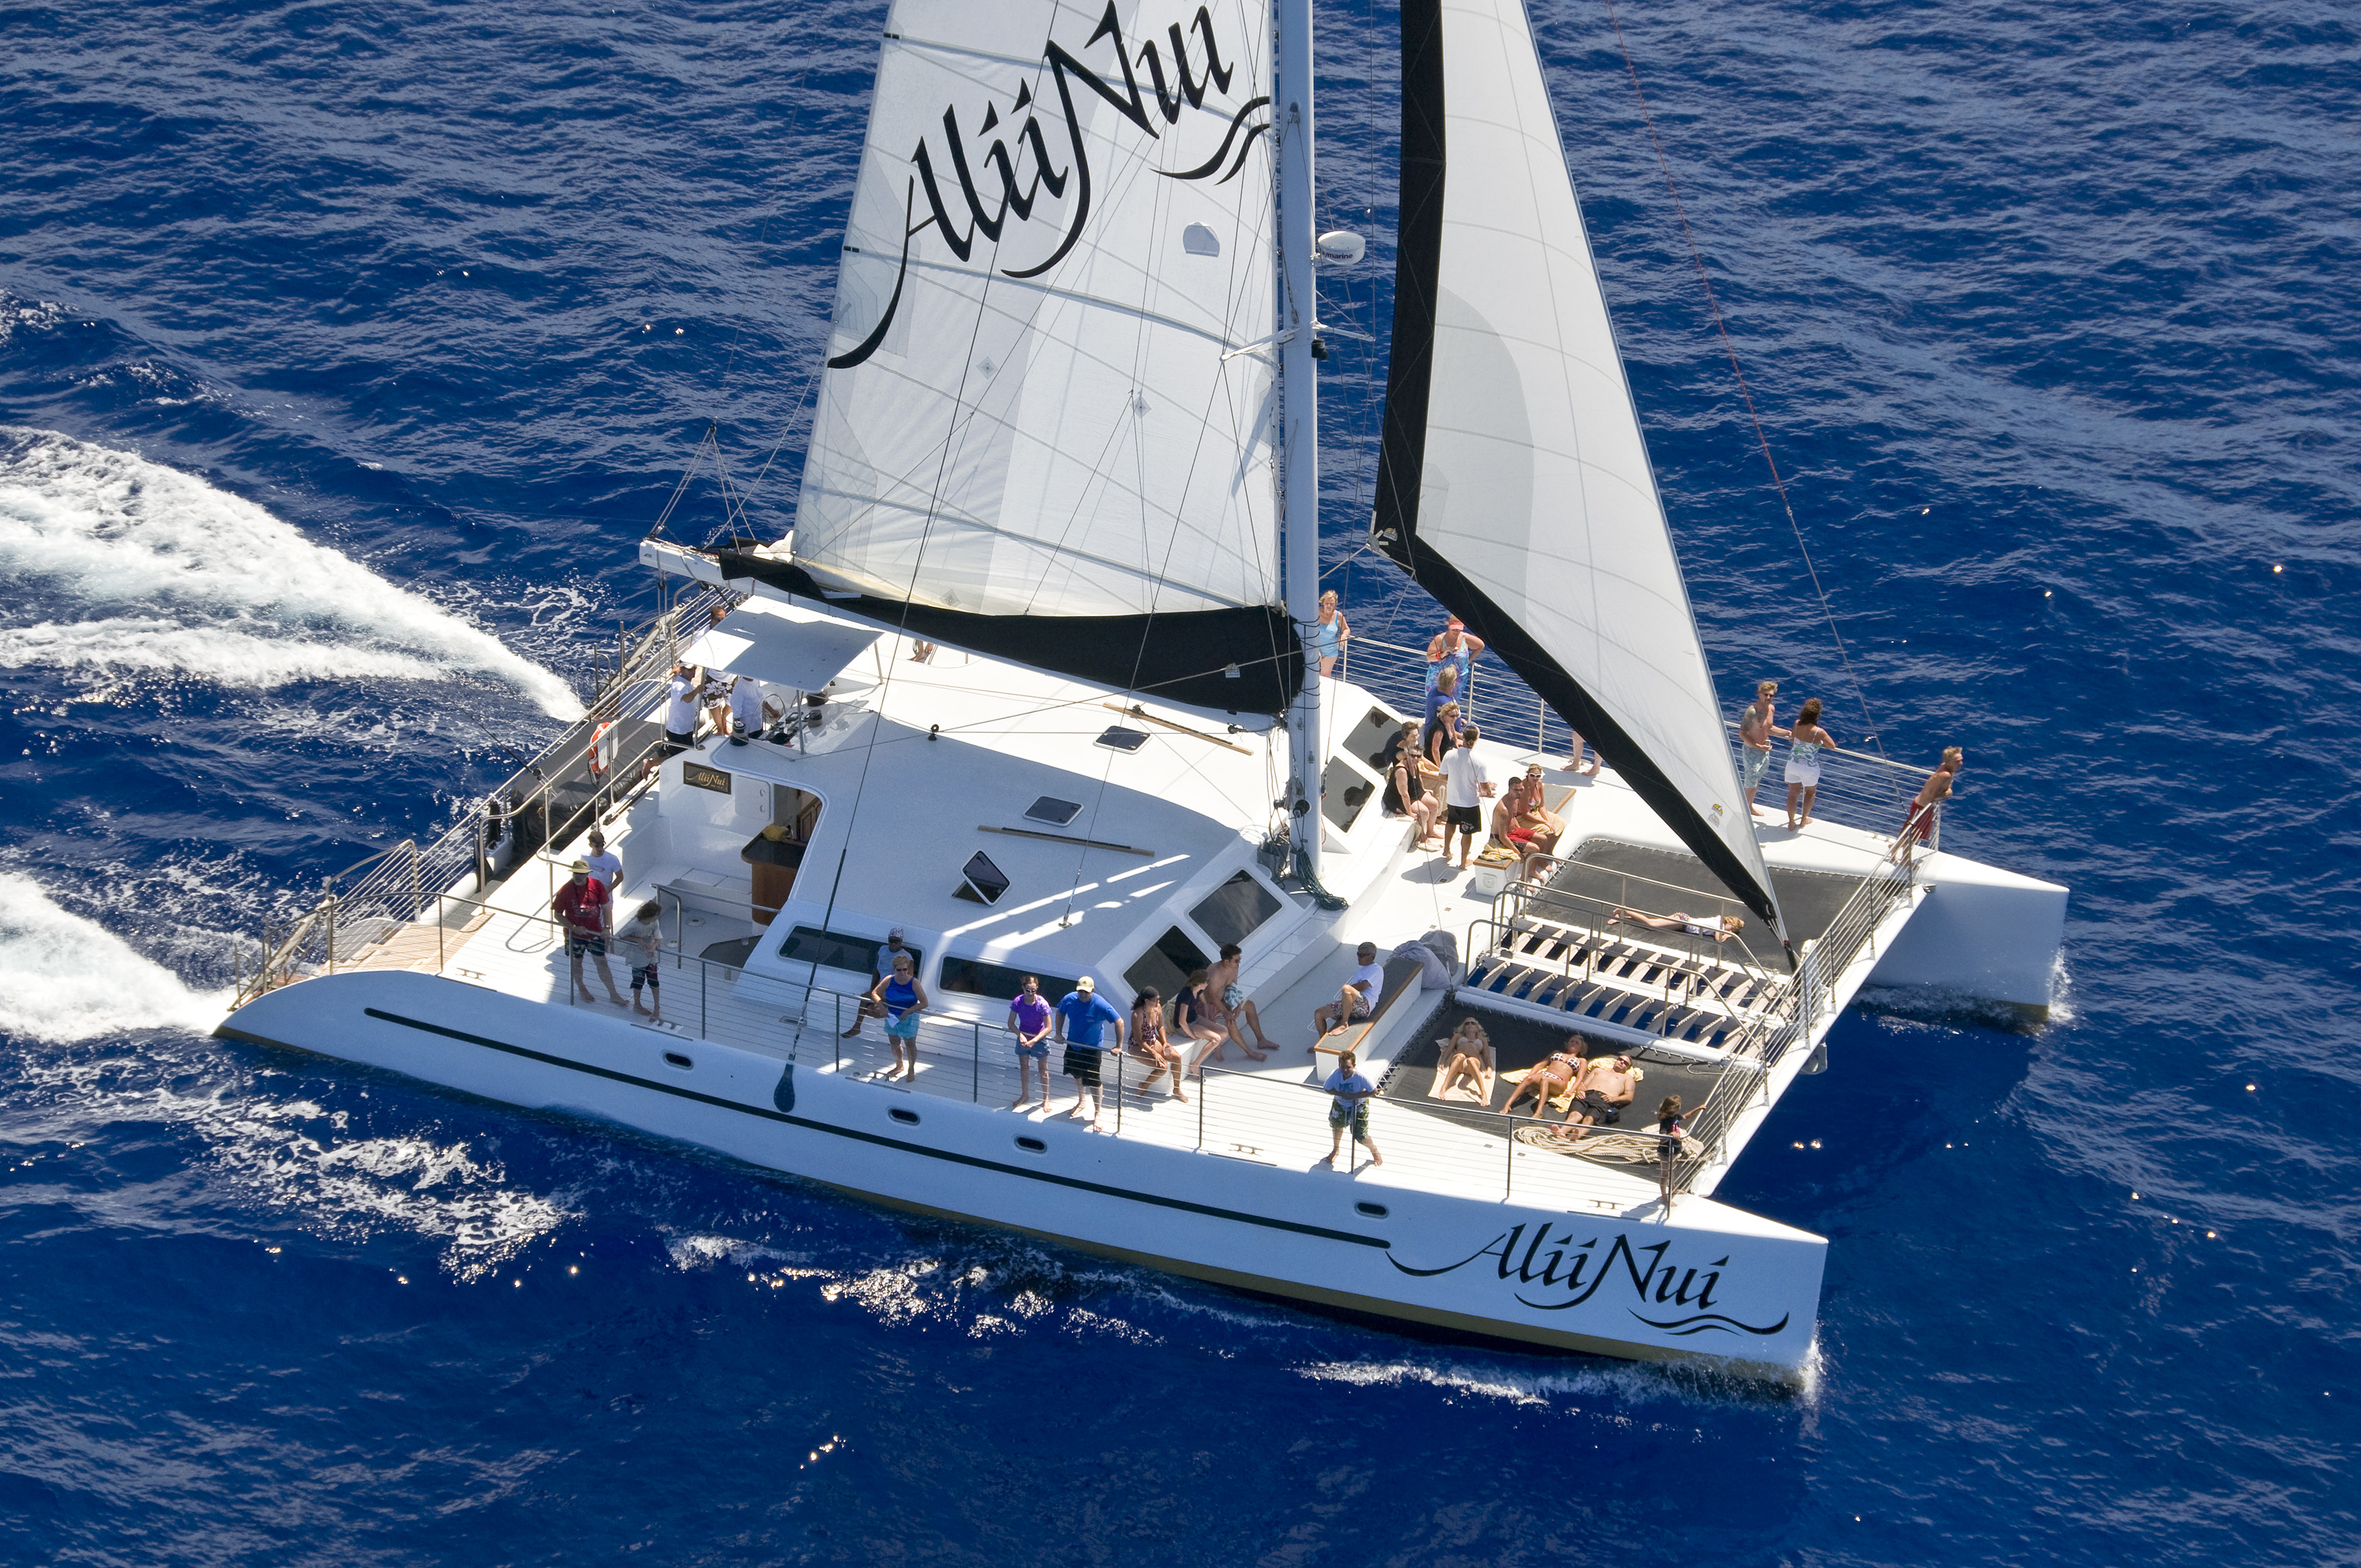 Product Luxury Catamaran Afternoon Snorkel Trip (3 Hour)